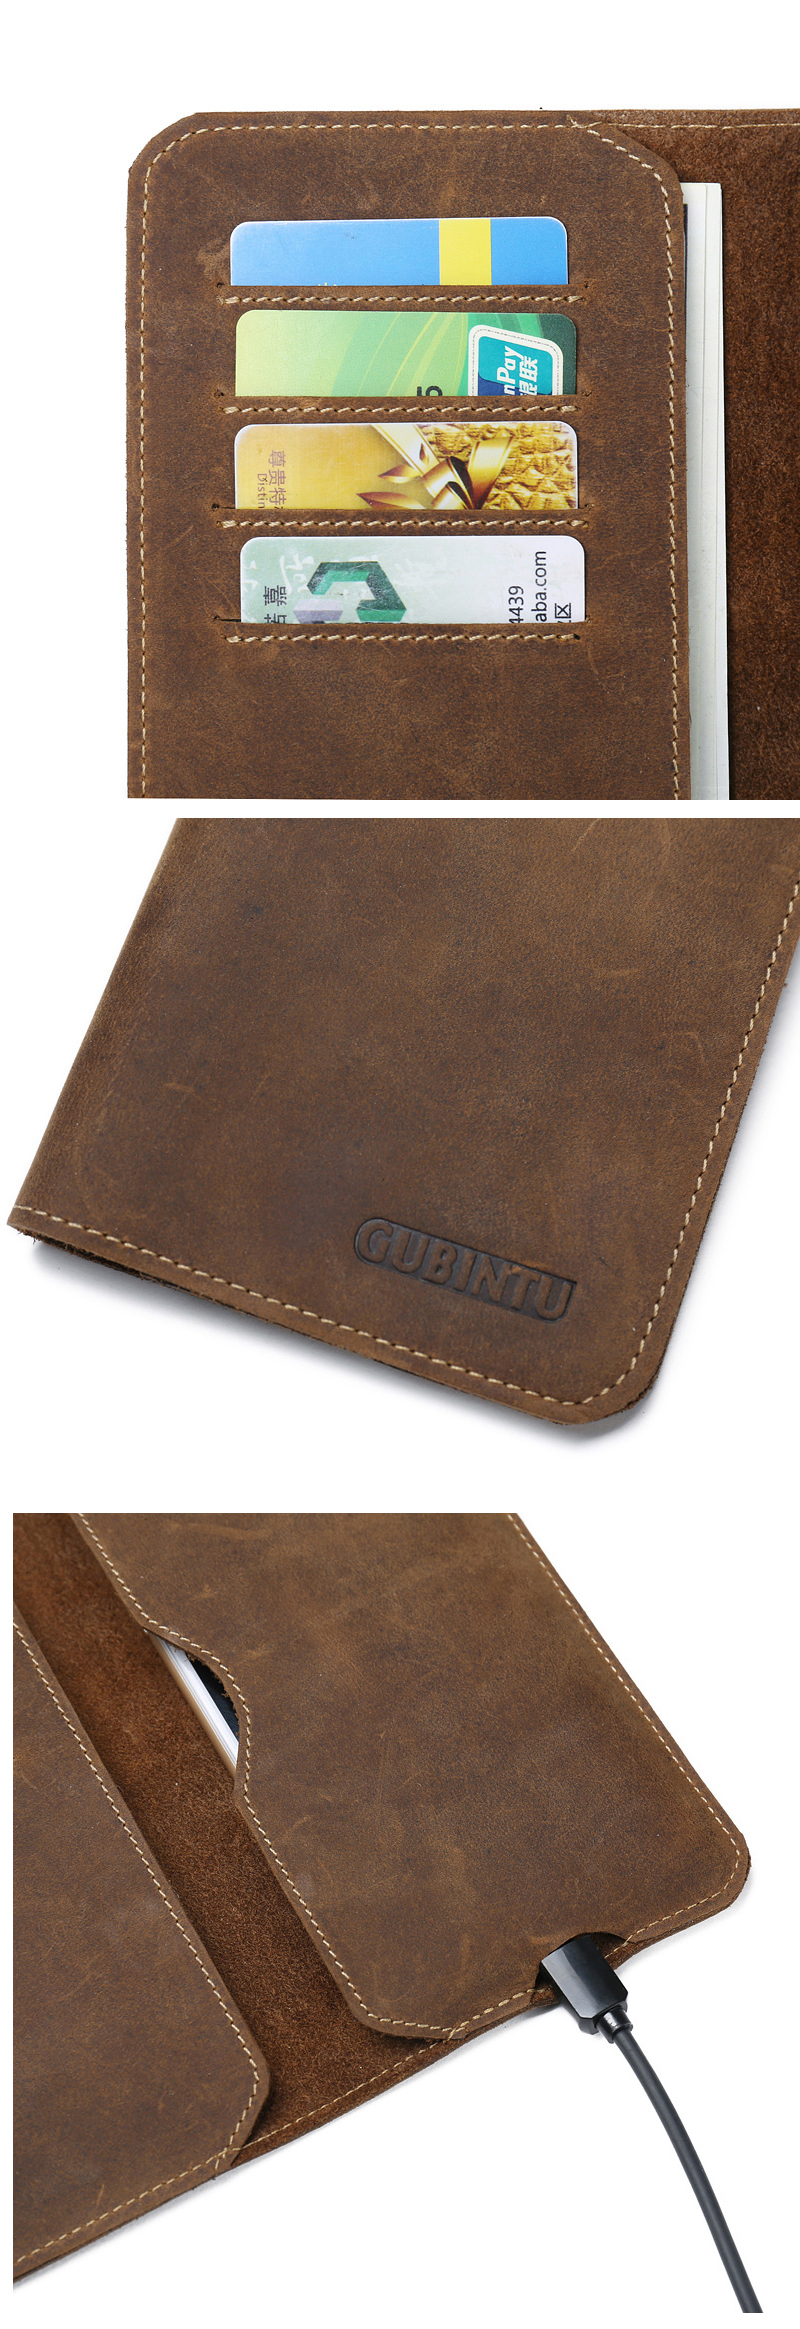 Men Genuine Leather Soft Leather 5.0-6.0 Inches Phone Bag